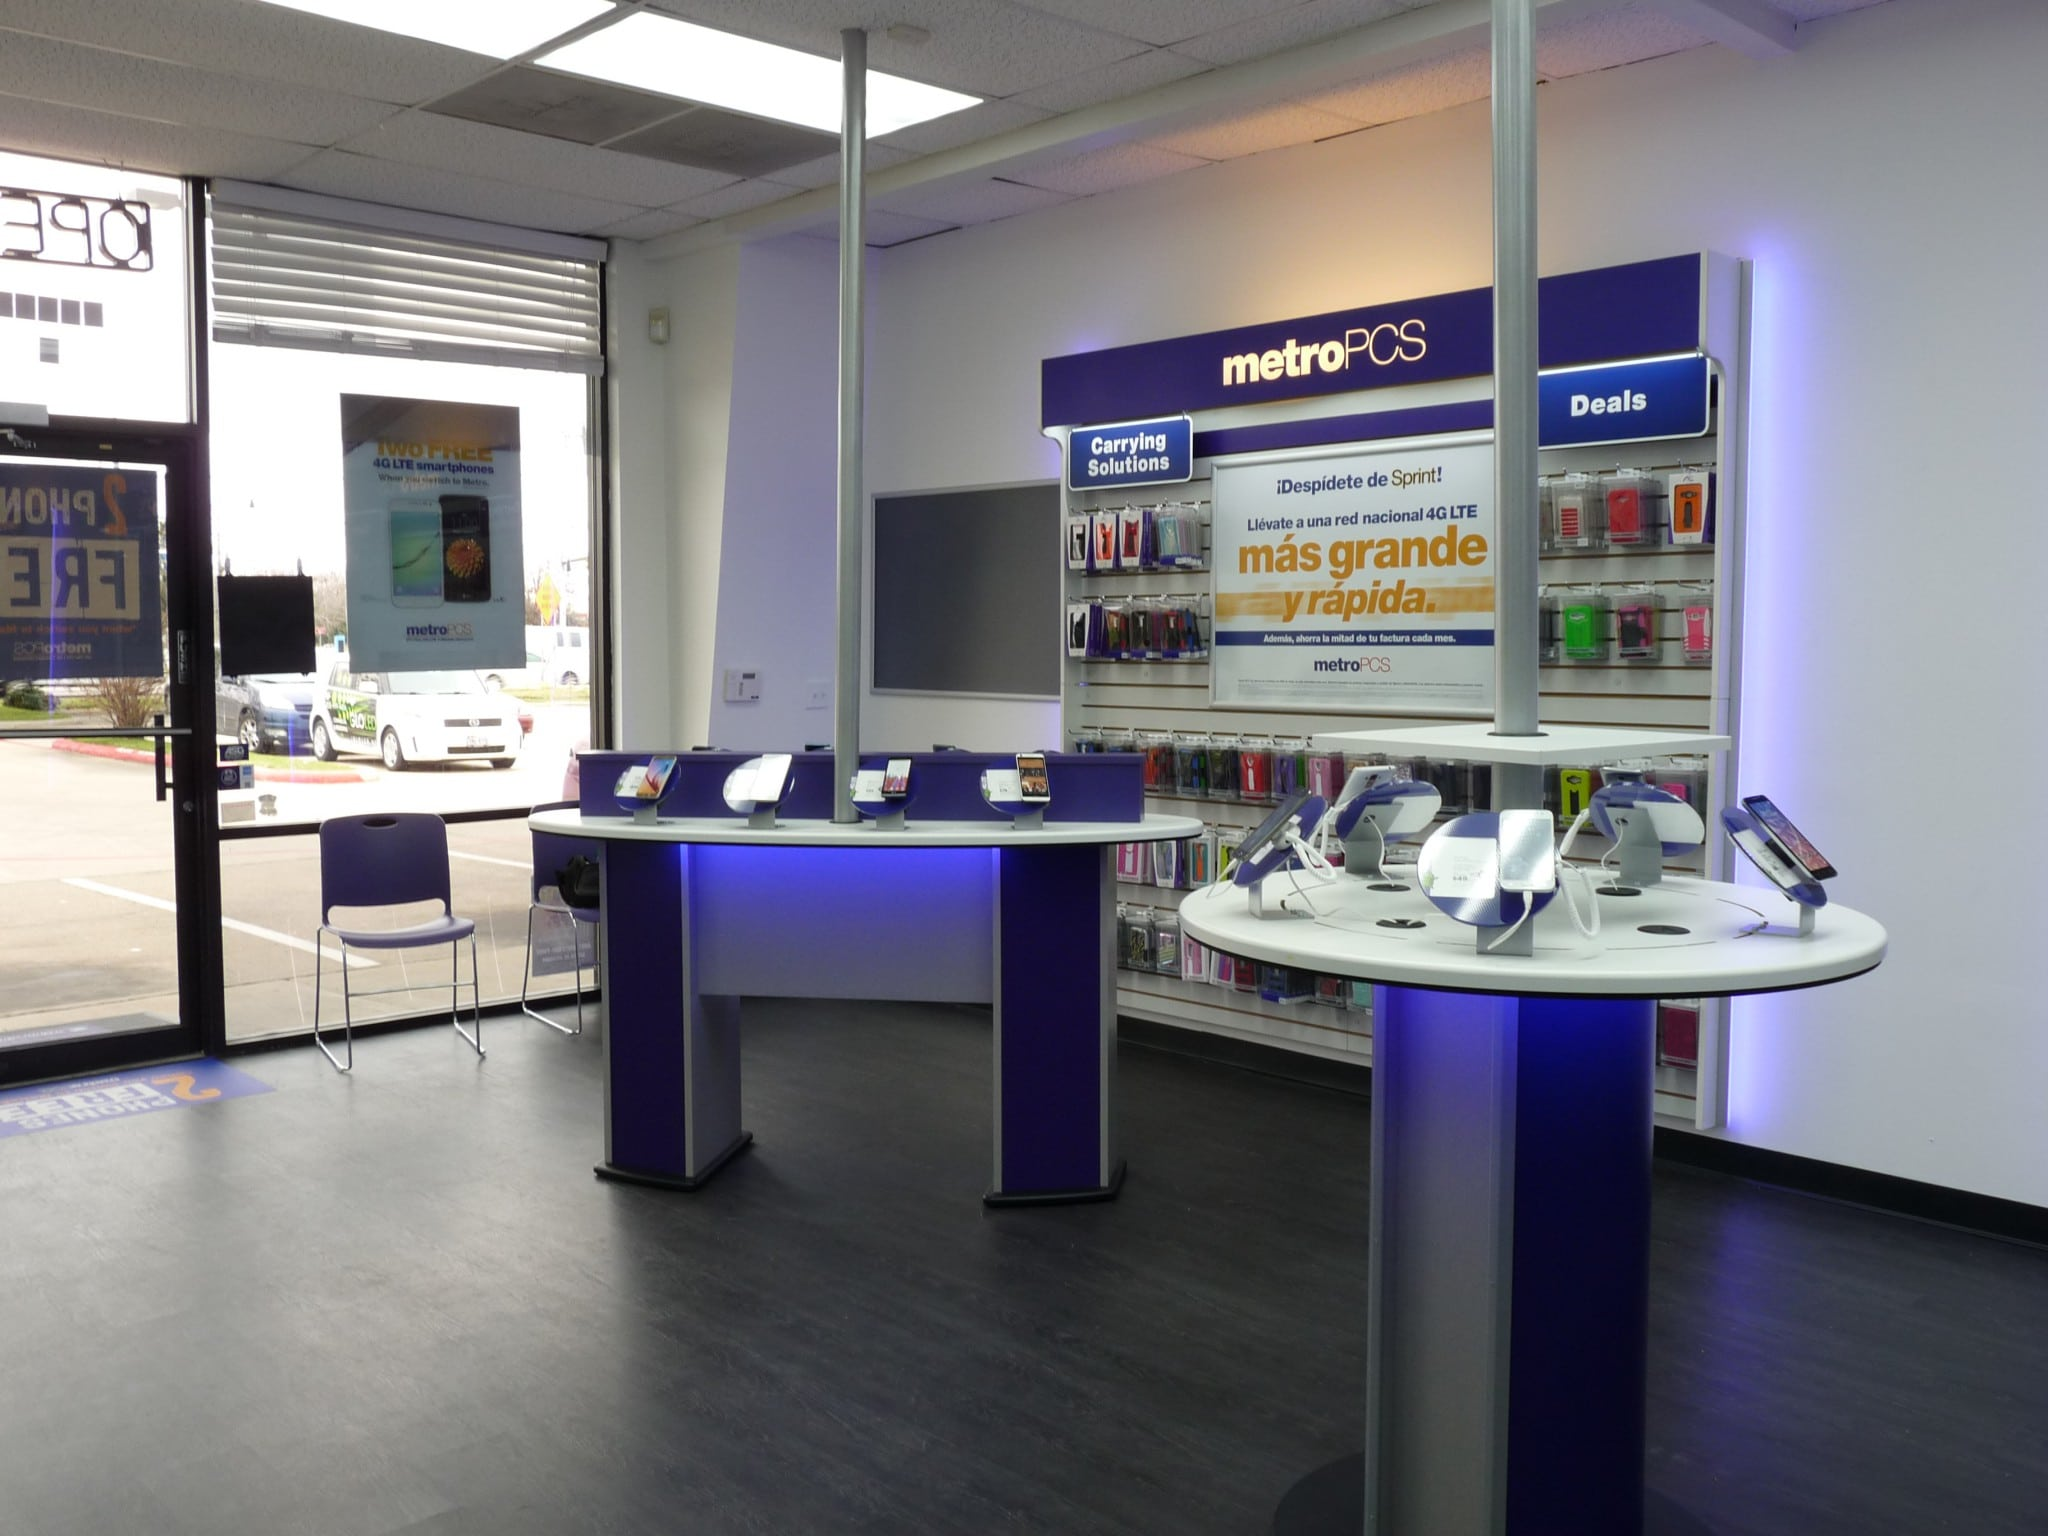 Metro pcs stores in houston - King soopers coupons